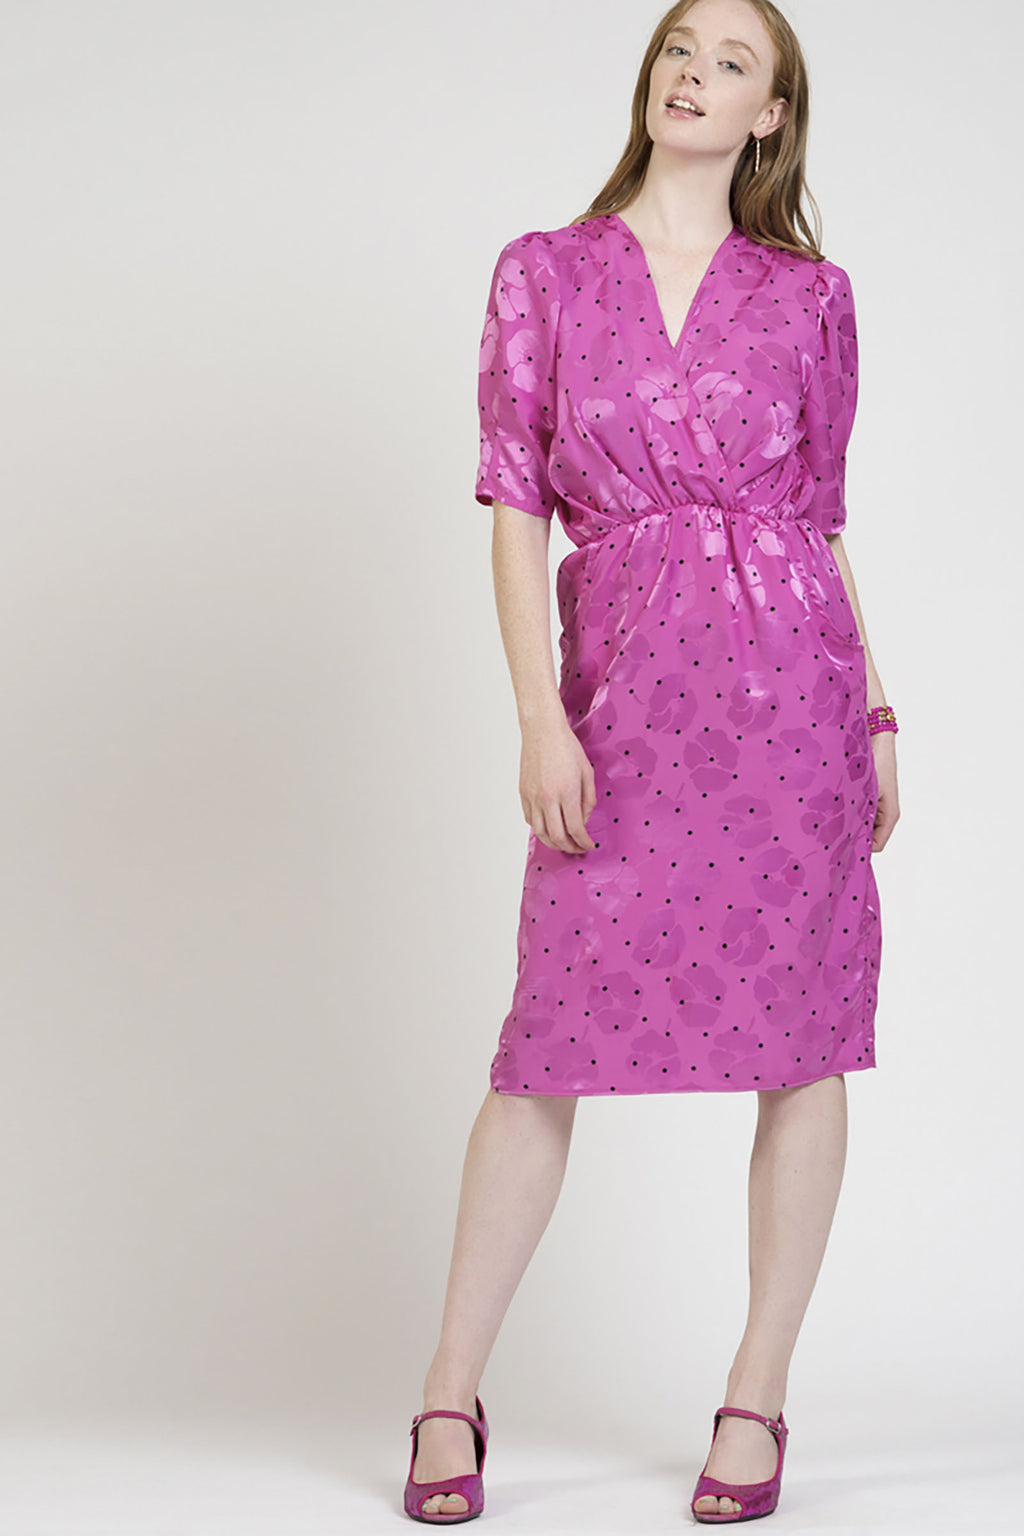 Hot Pink Vintage Wrap Dress